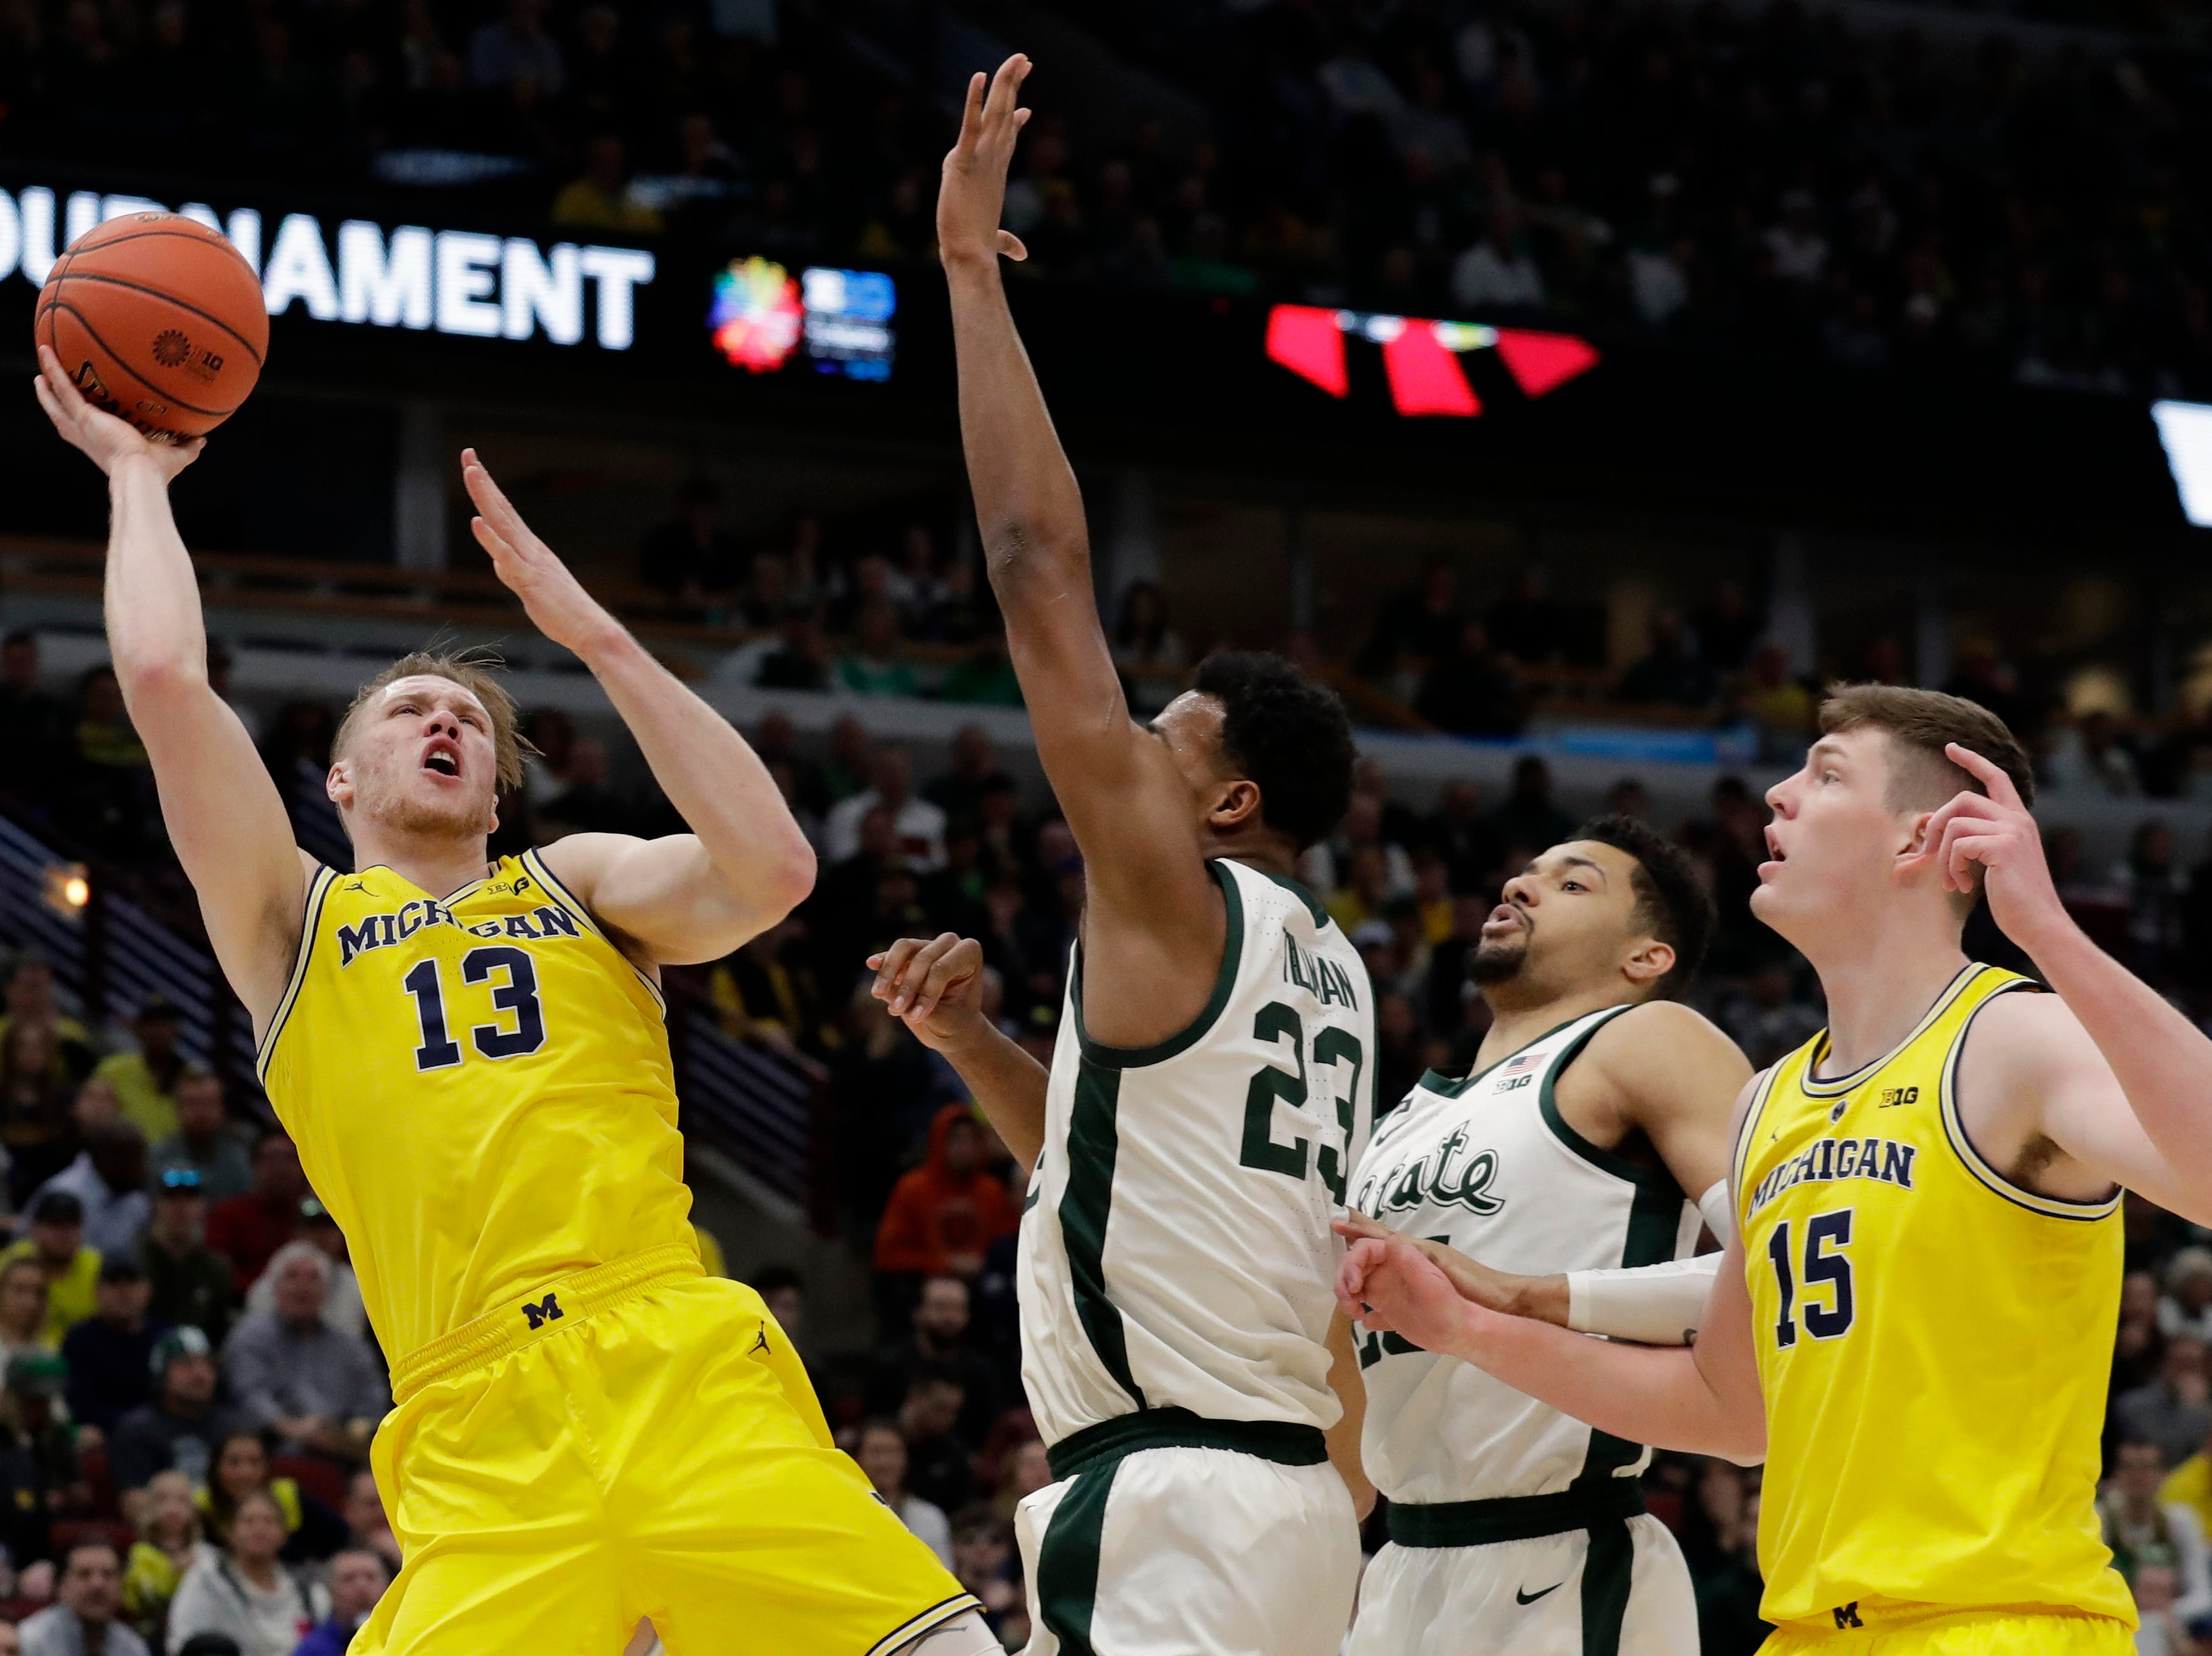 Michigan's Ignas Brazdeikis (13) goes up for a shot against Michigan State's Xavier Tillman (23) during the first half of an NCAA college basketball championship game in the Big Ten Conference tournament, Sunday, March 17, 2019, in Chicago.